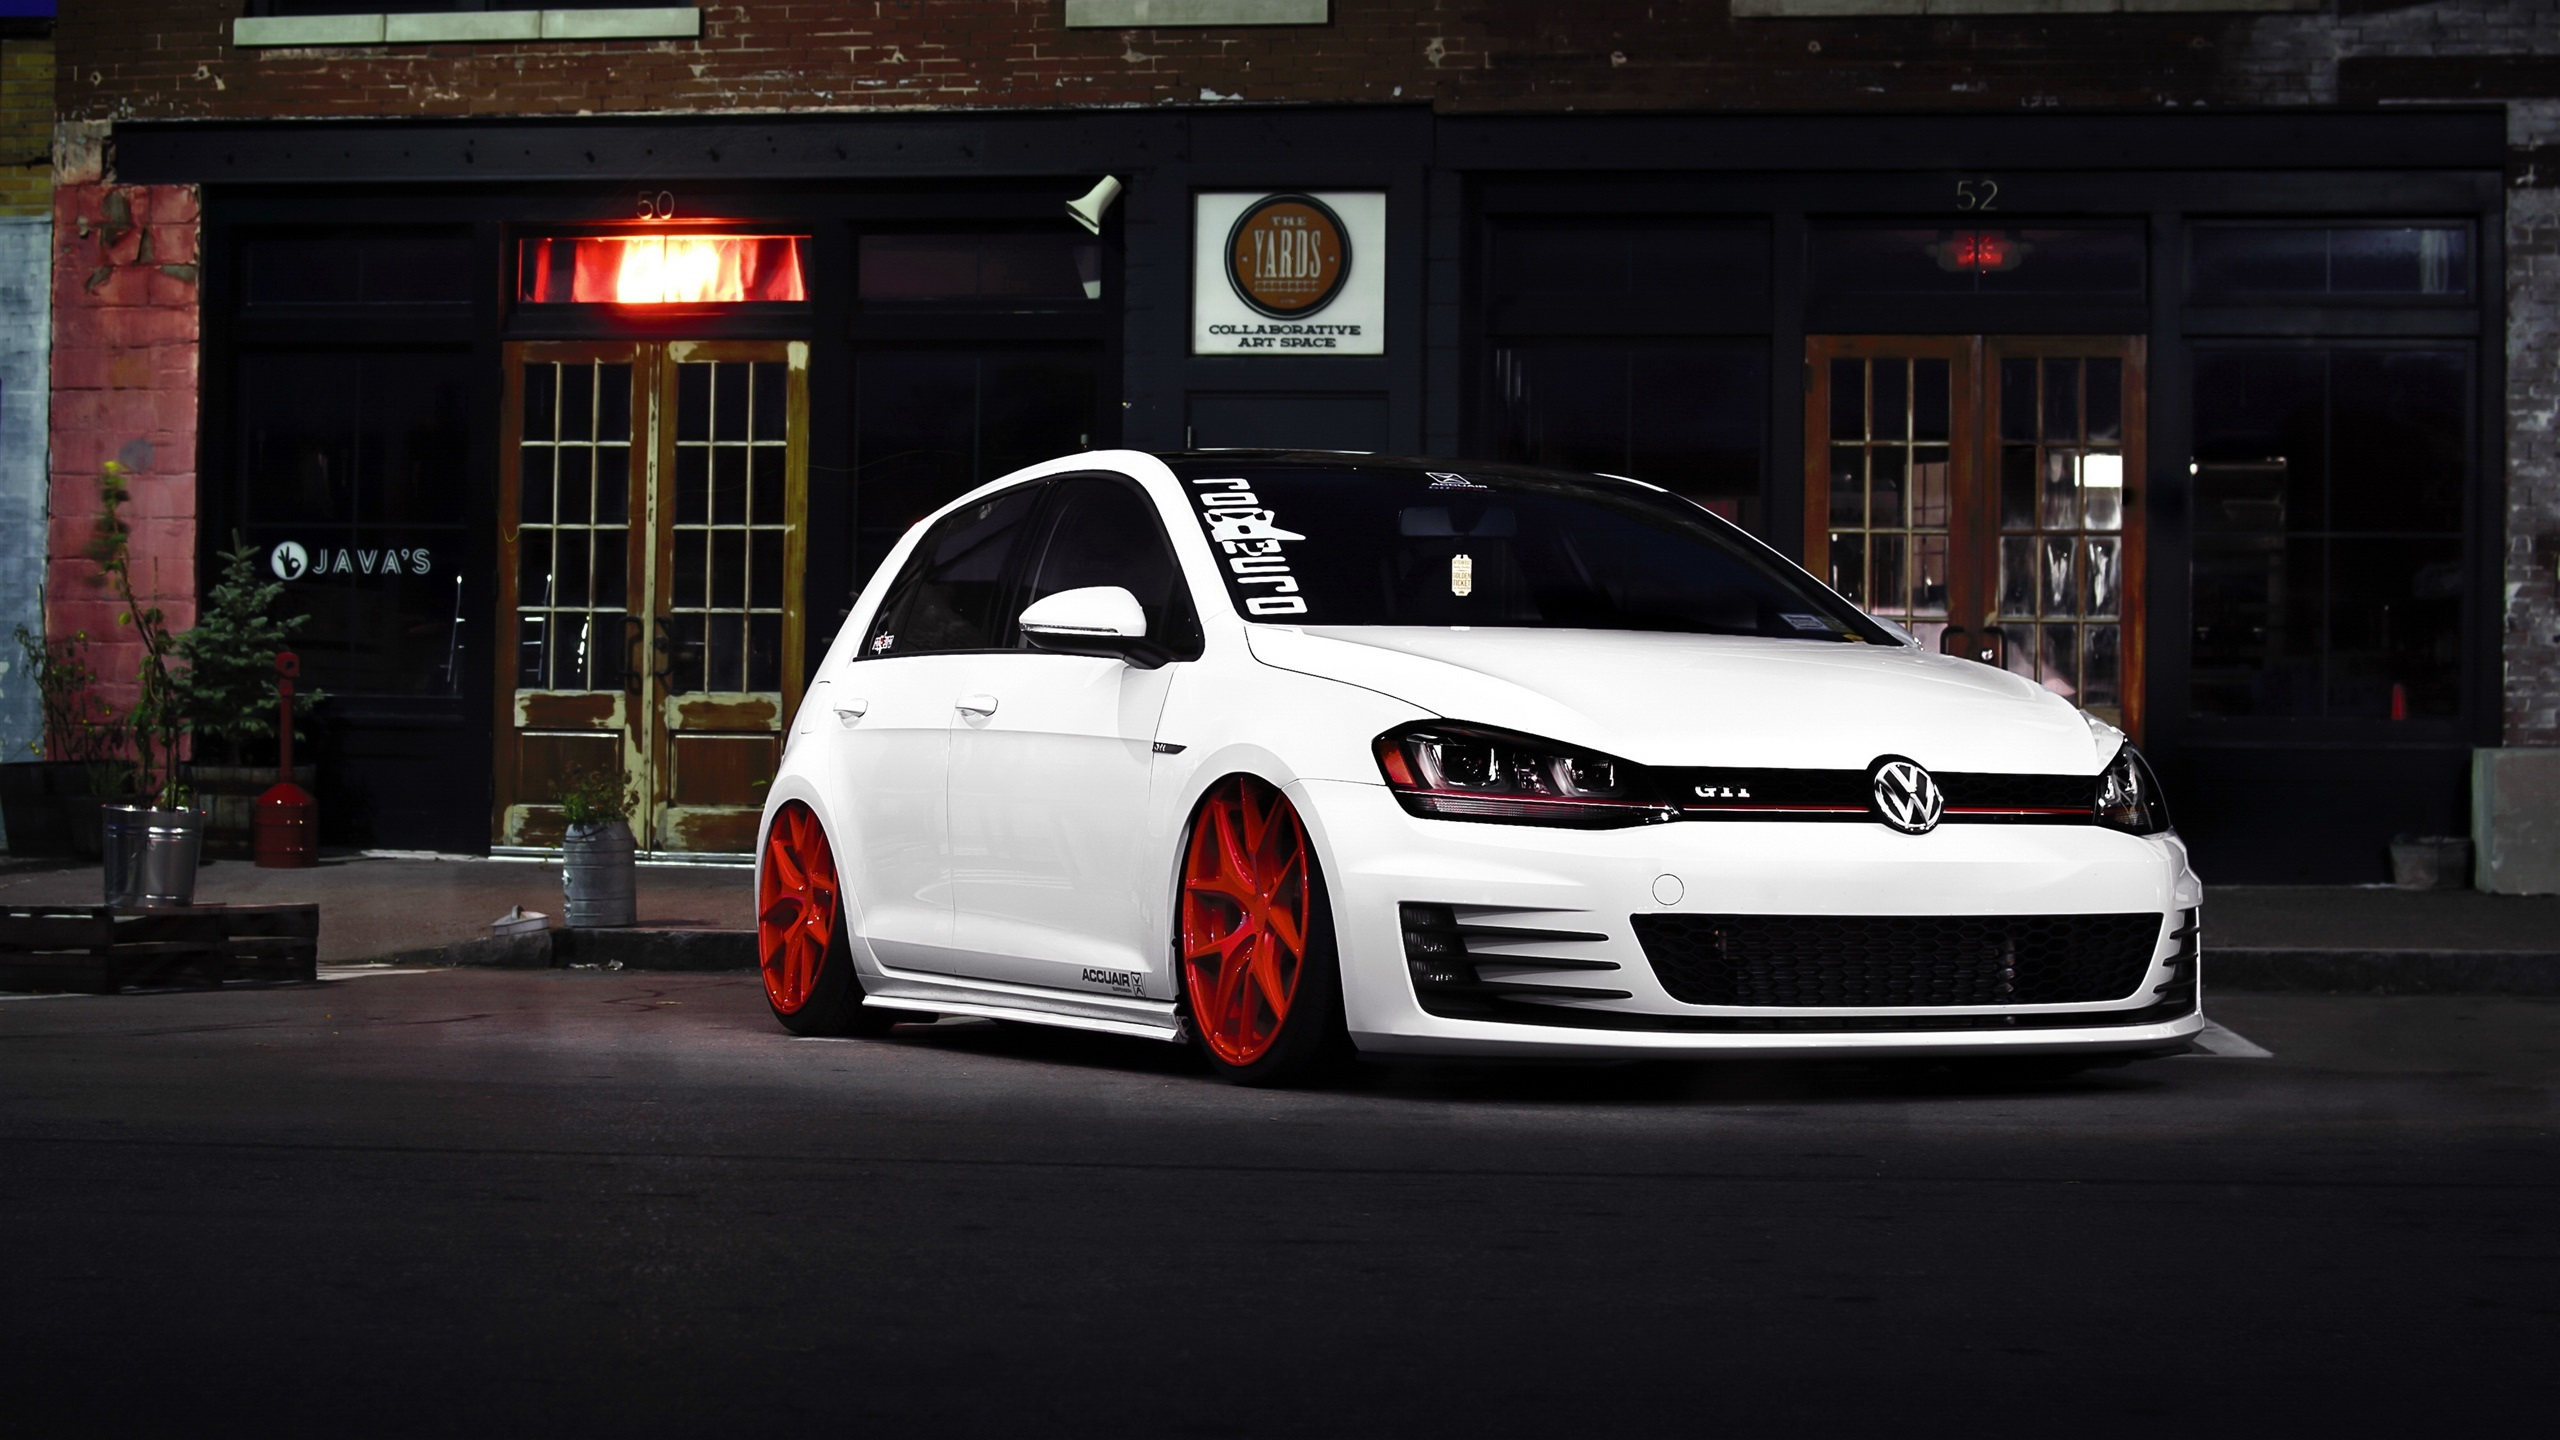 Wallpaper Volkswagen Golf Gti Car Front View 2560x1600 Hd